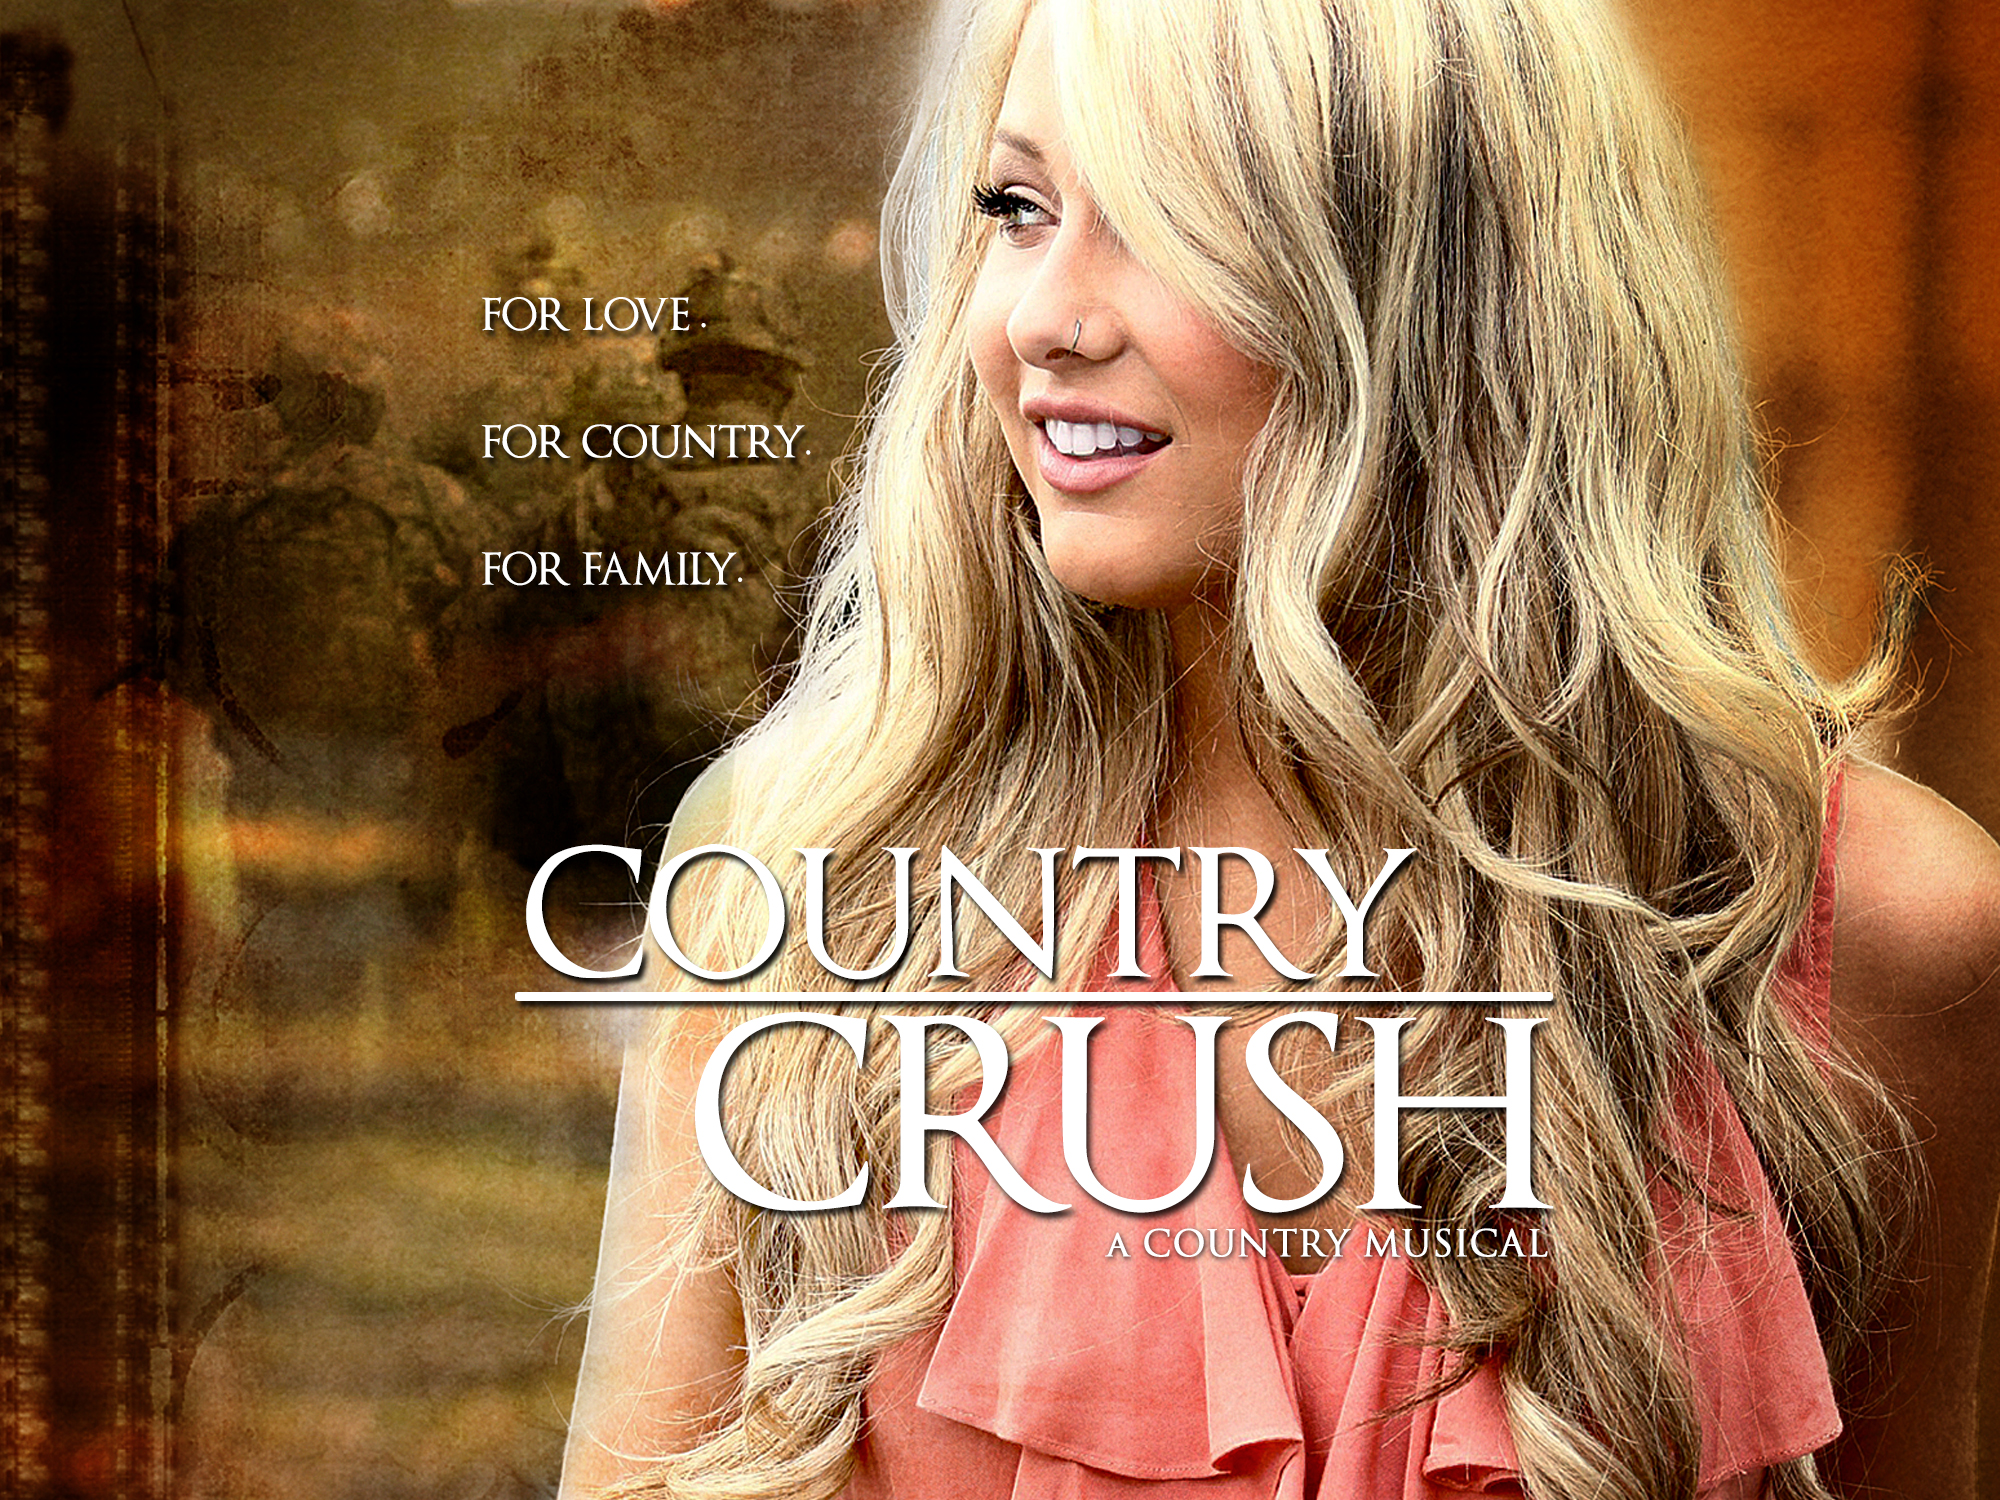 DED_CountryCrush_001